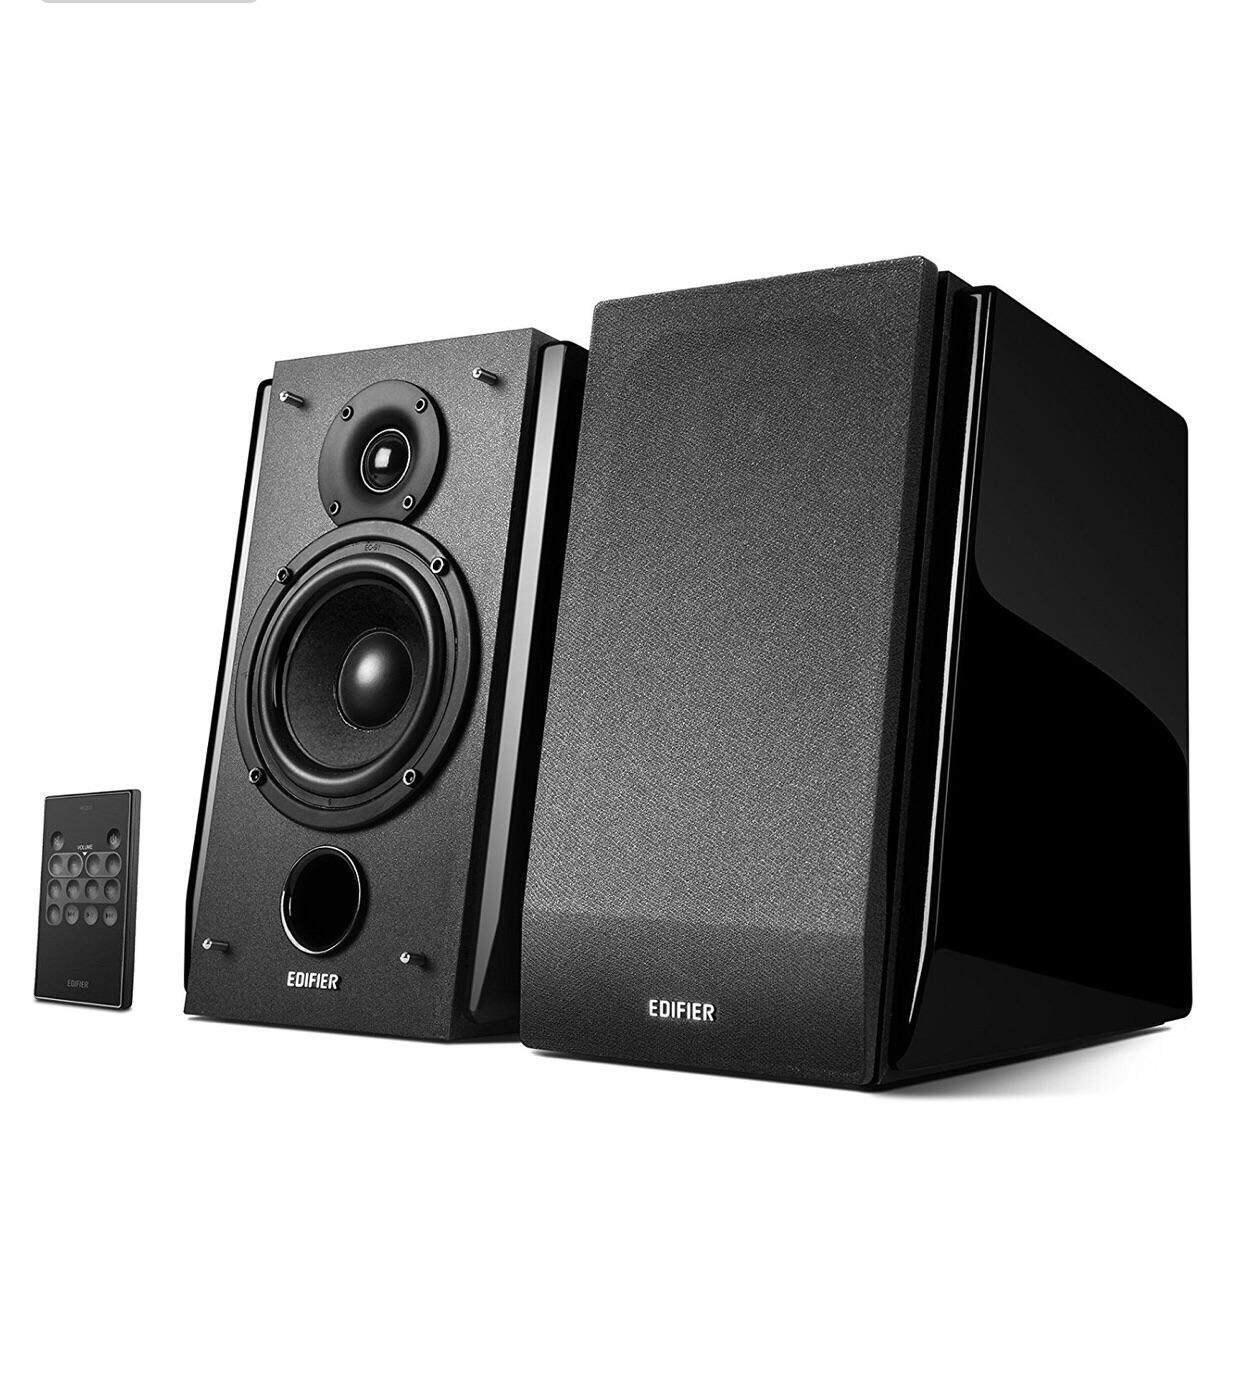 ยโสธร Edifier R1850DB Active Bookshelf Speakers with Bluetooth and Optical Input - 2.0 Studio Monitor Speaker - Built-in Amplifier with Subwoofer Line Out รับประกัน 2 ปี